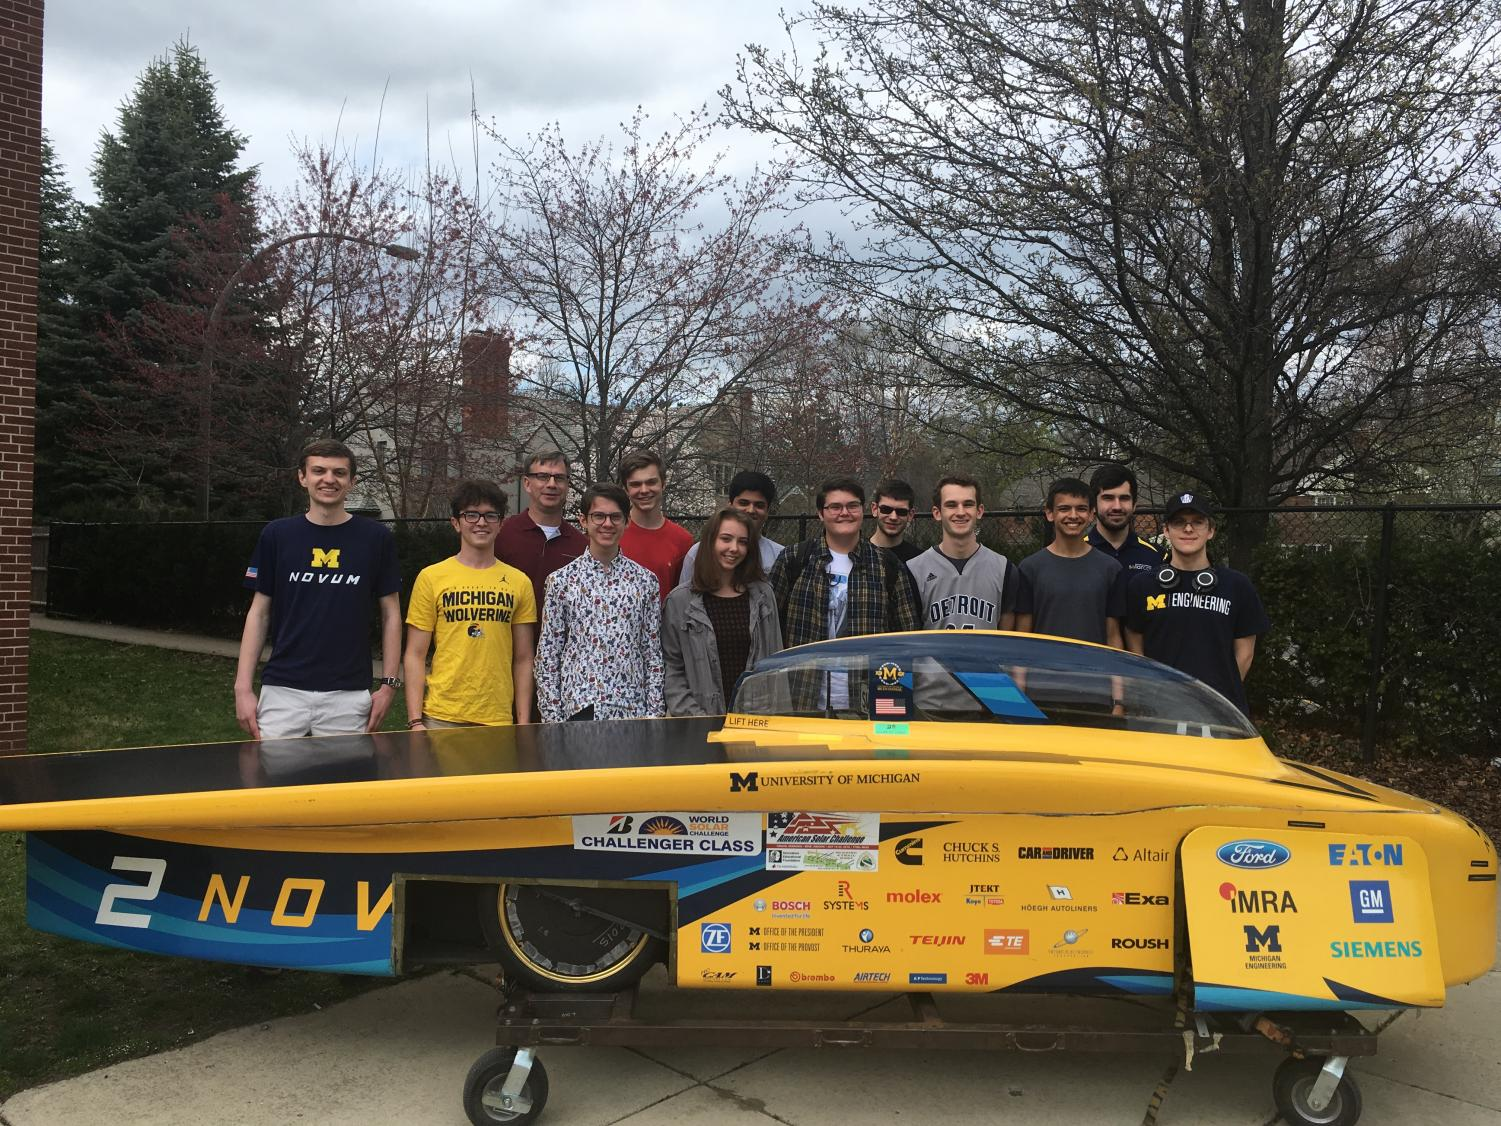 The team, whose ultimate goal is to build a car using only solar power, stands with the University of Michigan's solar car last year. The team has raised $30,000, $5,000 more than their initial goal. Photos courtesy of Alex Bower '20.